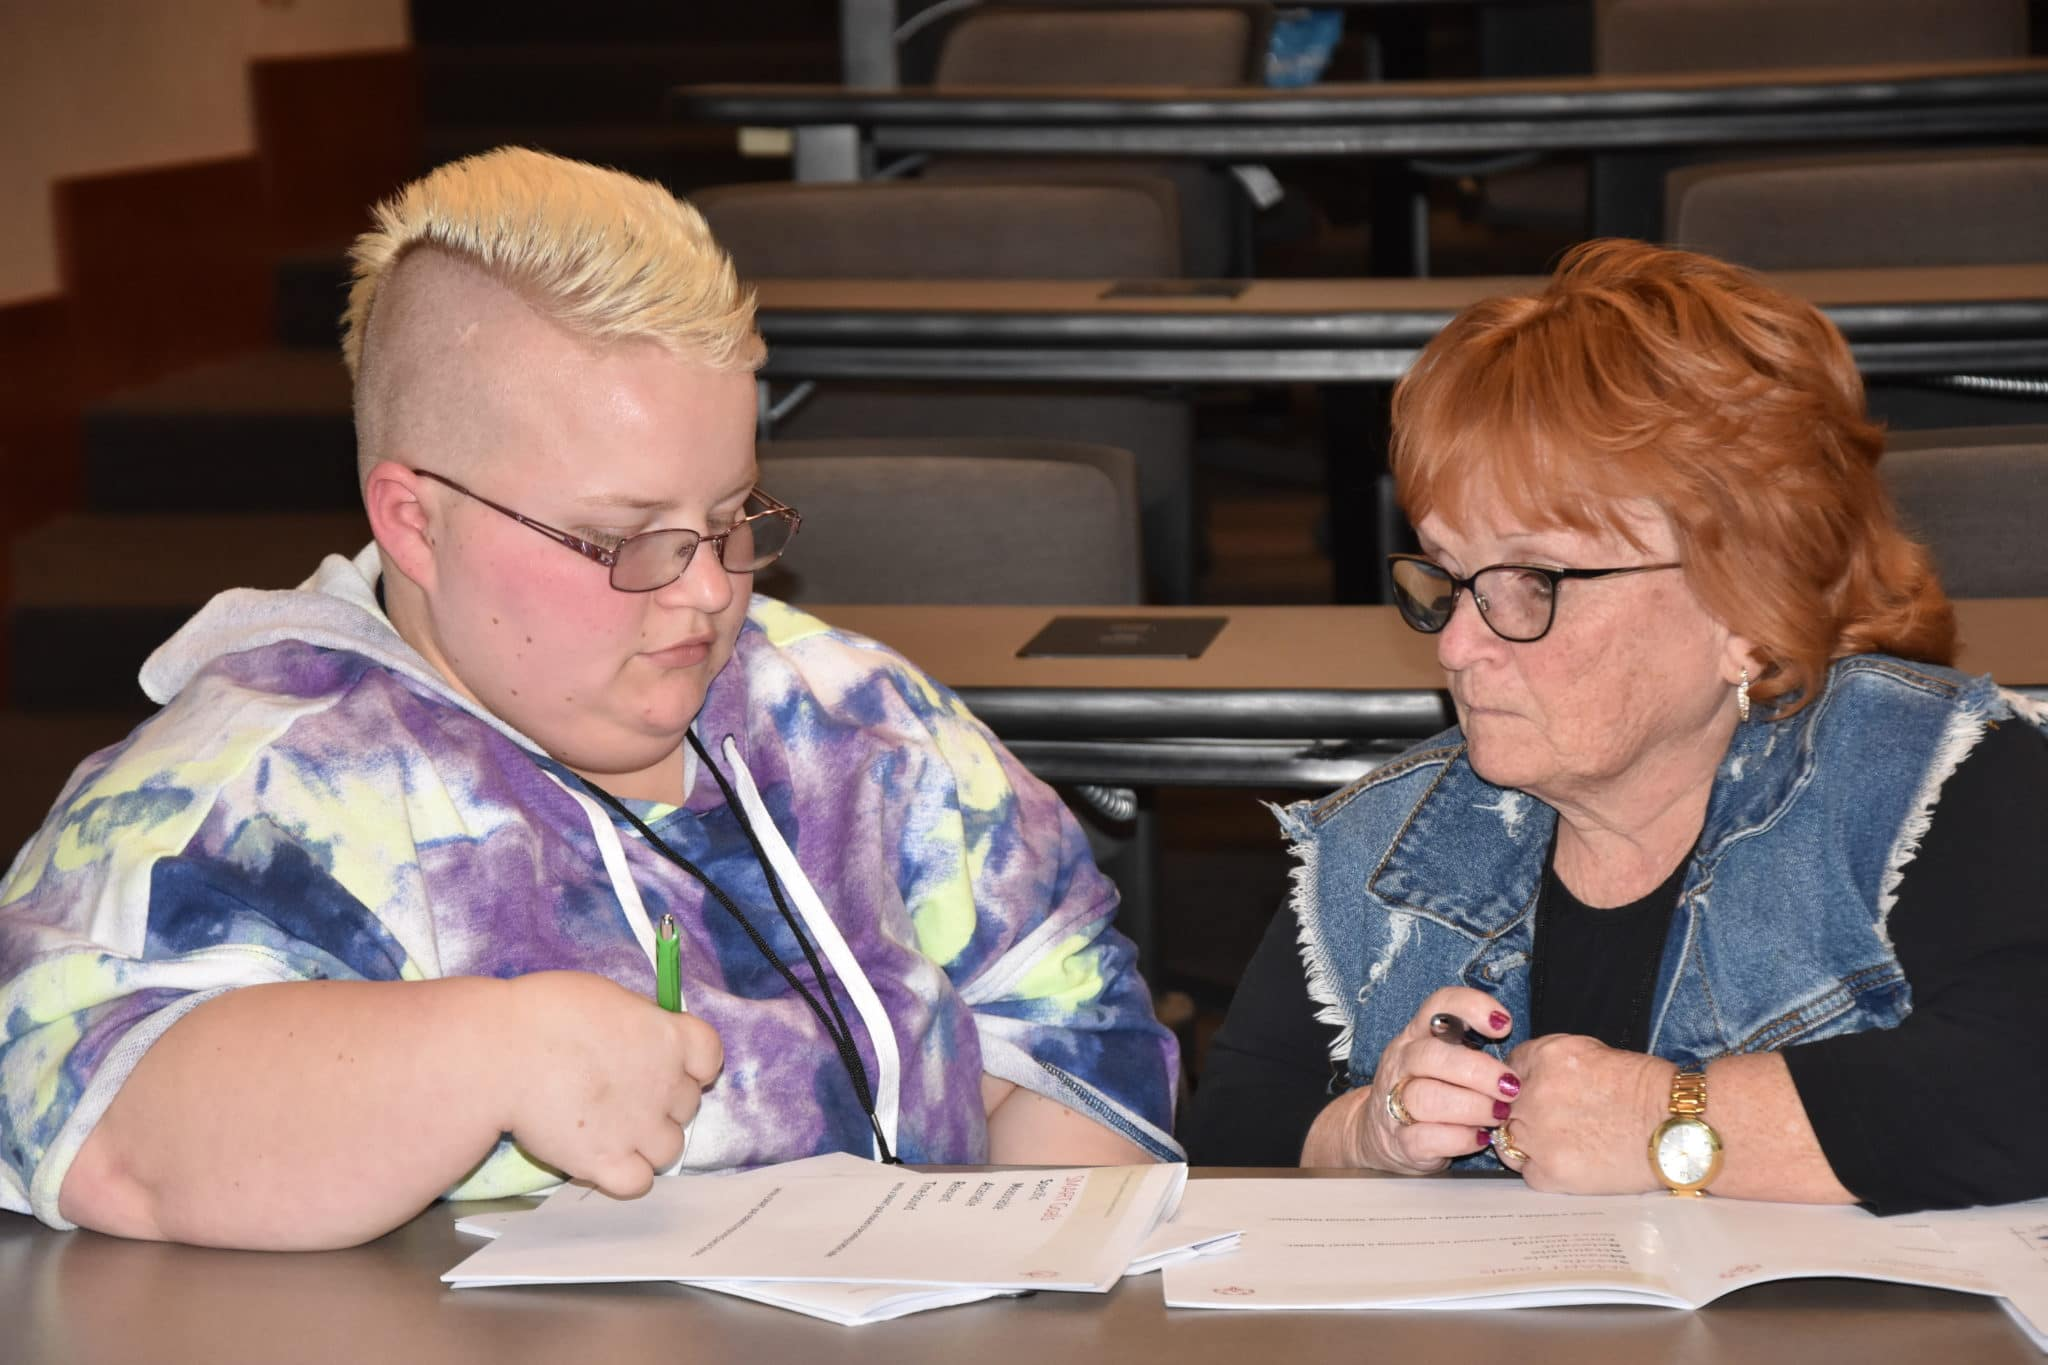 An athlete-leader and their mentor work together on their final project at an Athlete Leadership University